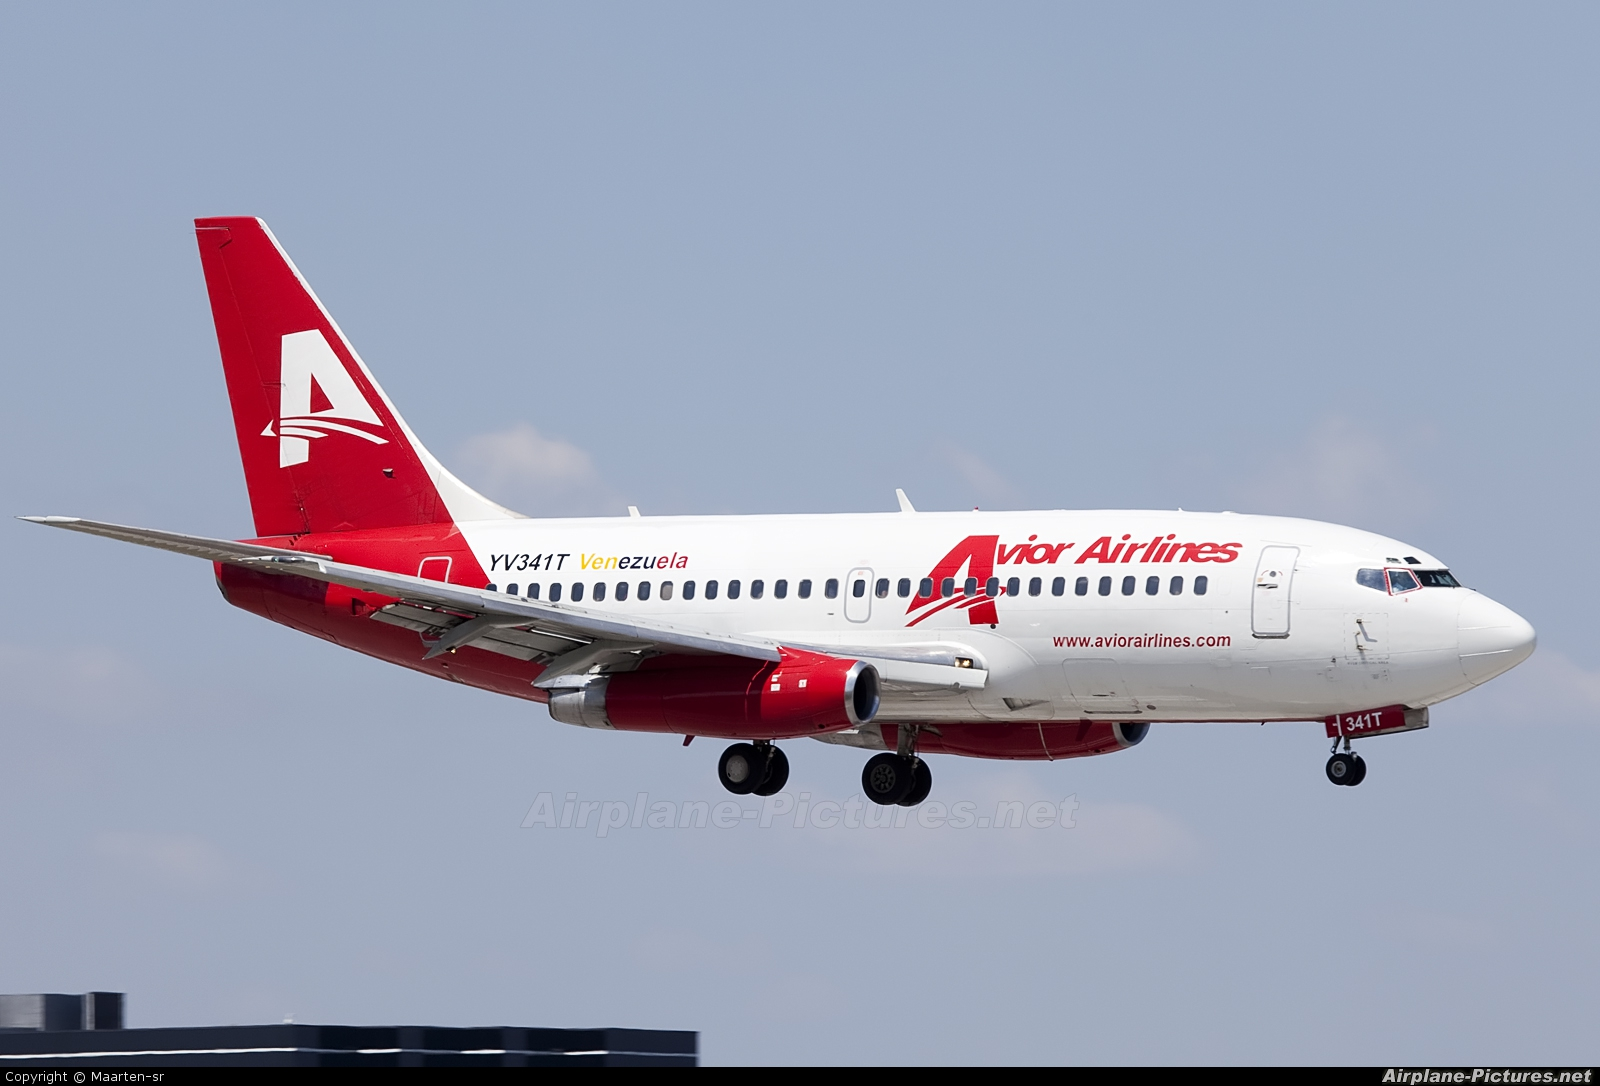 image gallery miami airlines